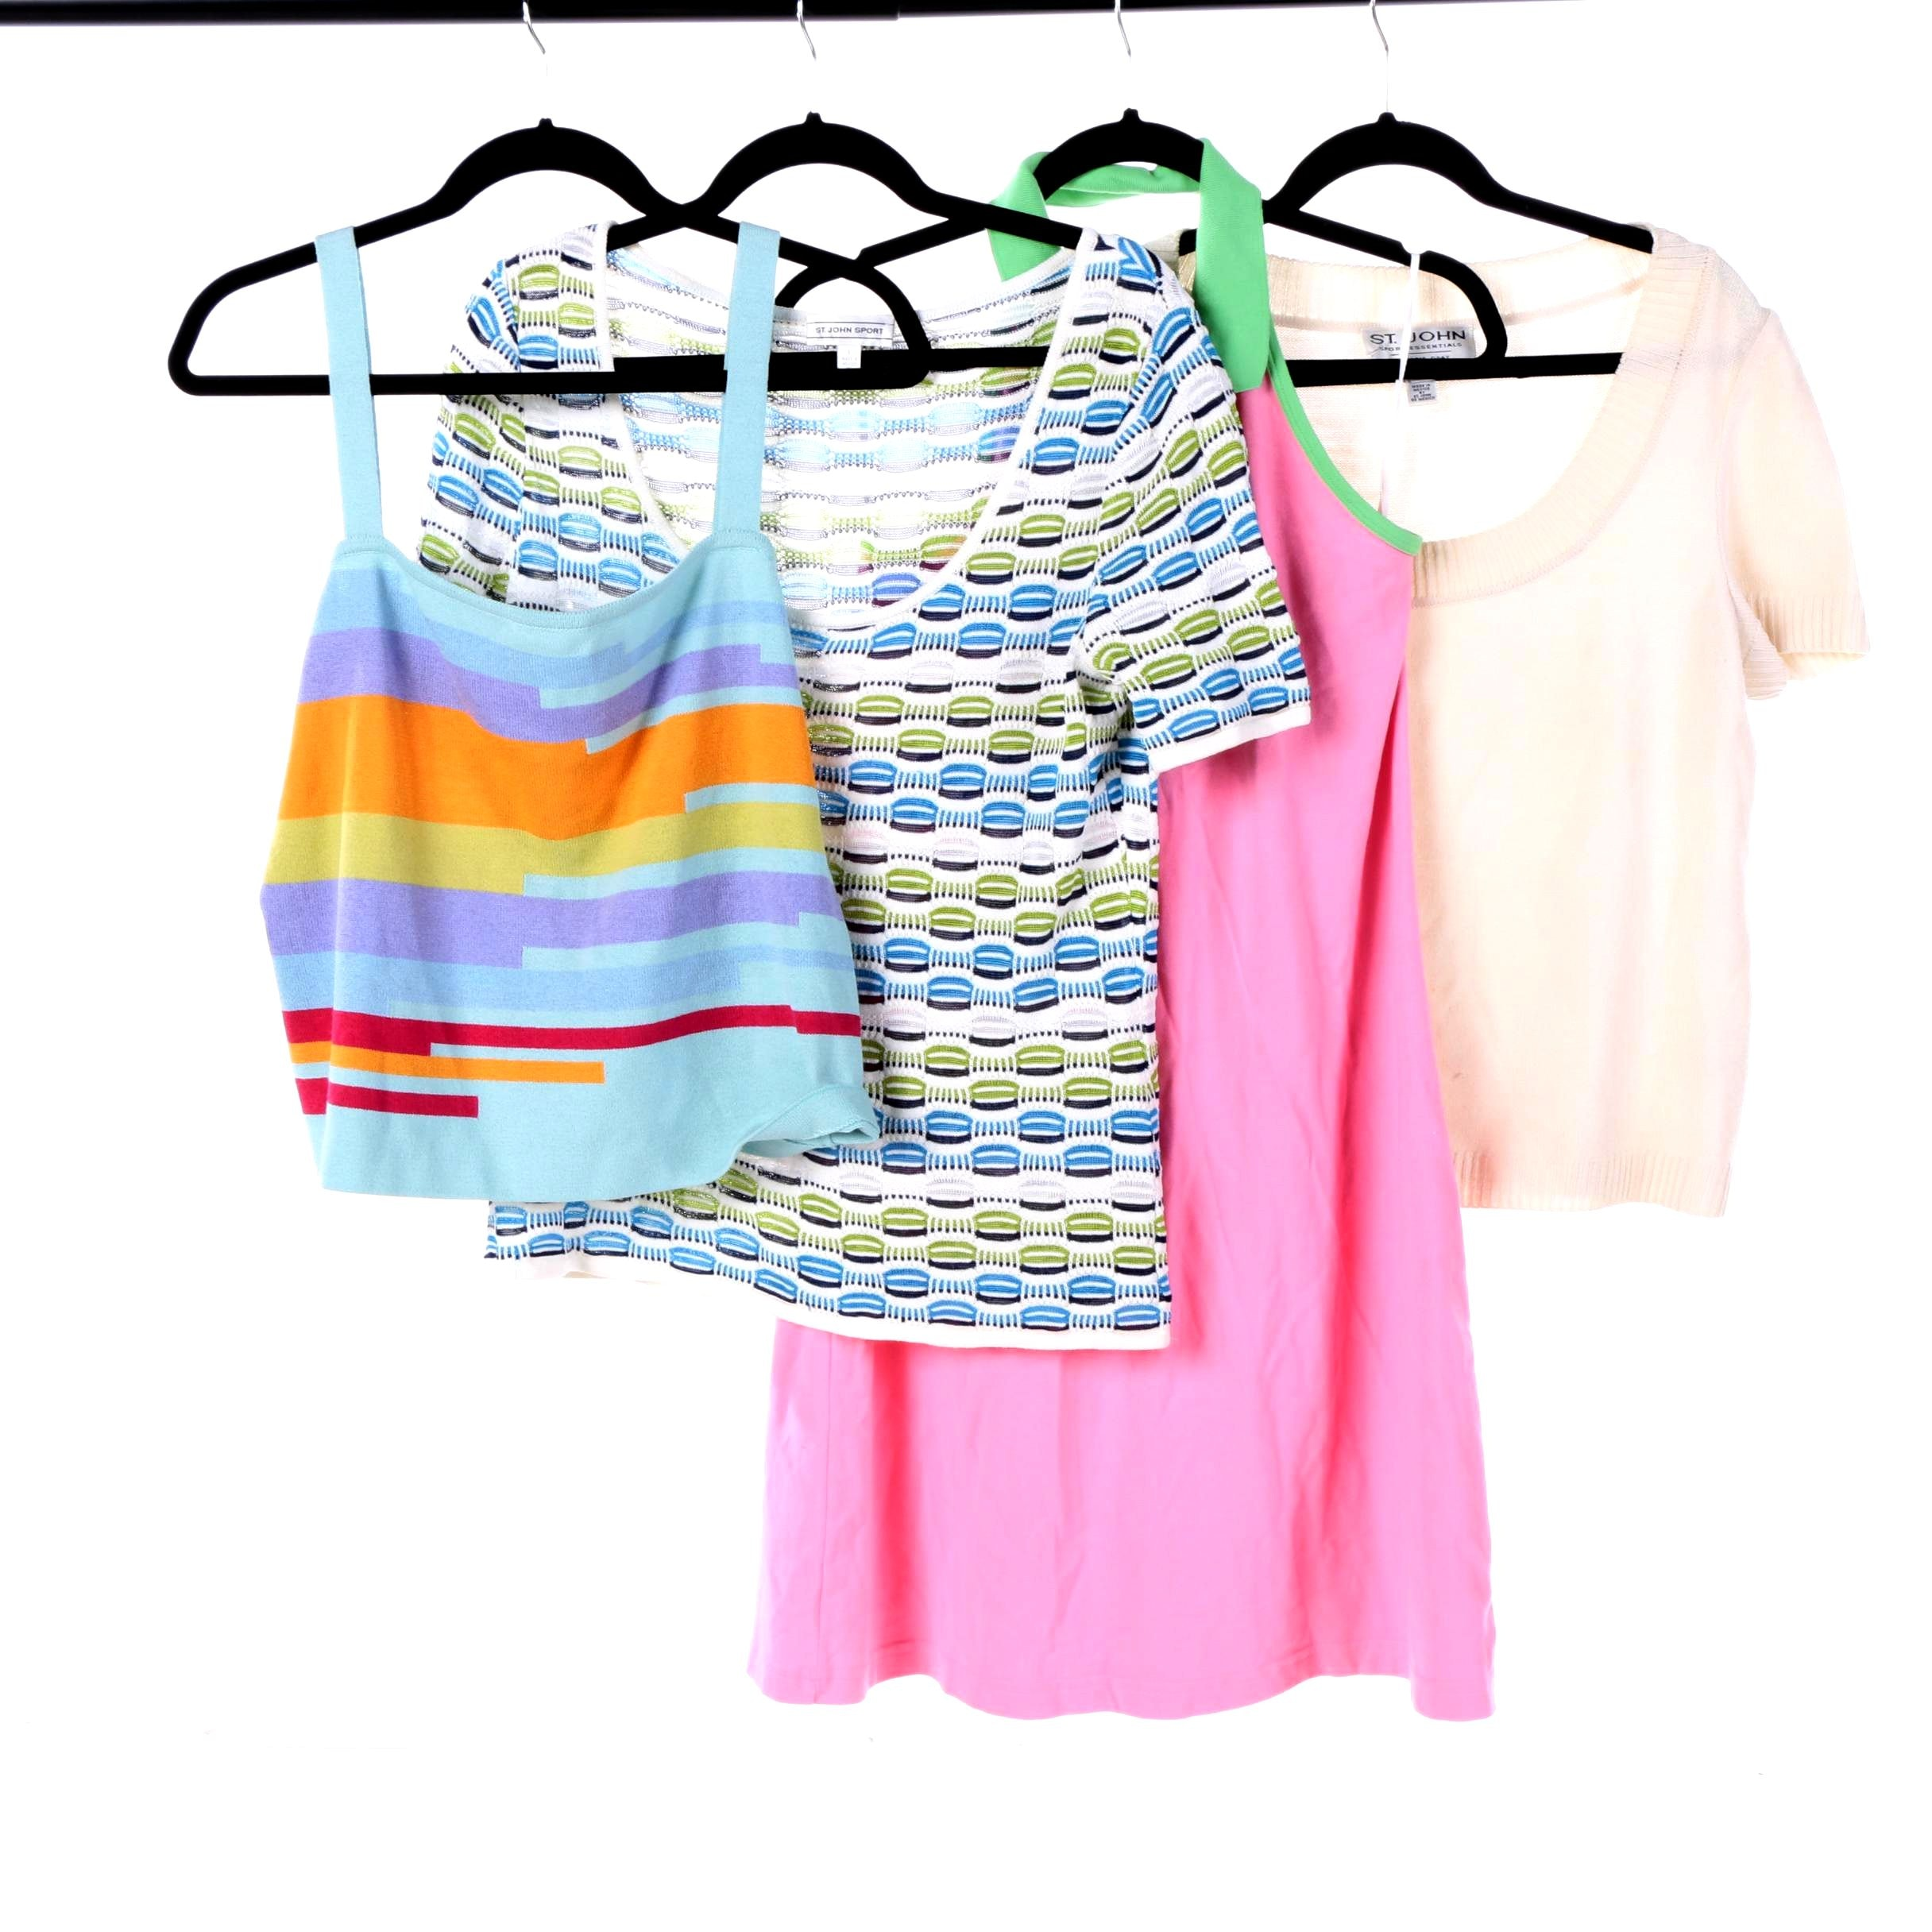 Women's St. John Sport and Lacoste Knit Tops and Sleeveless Dress